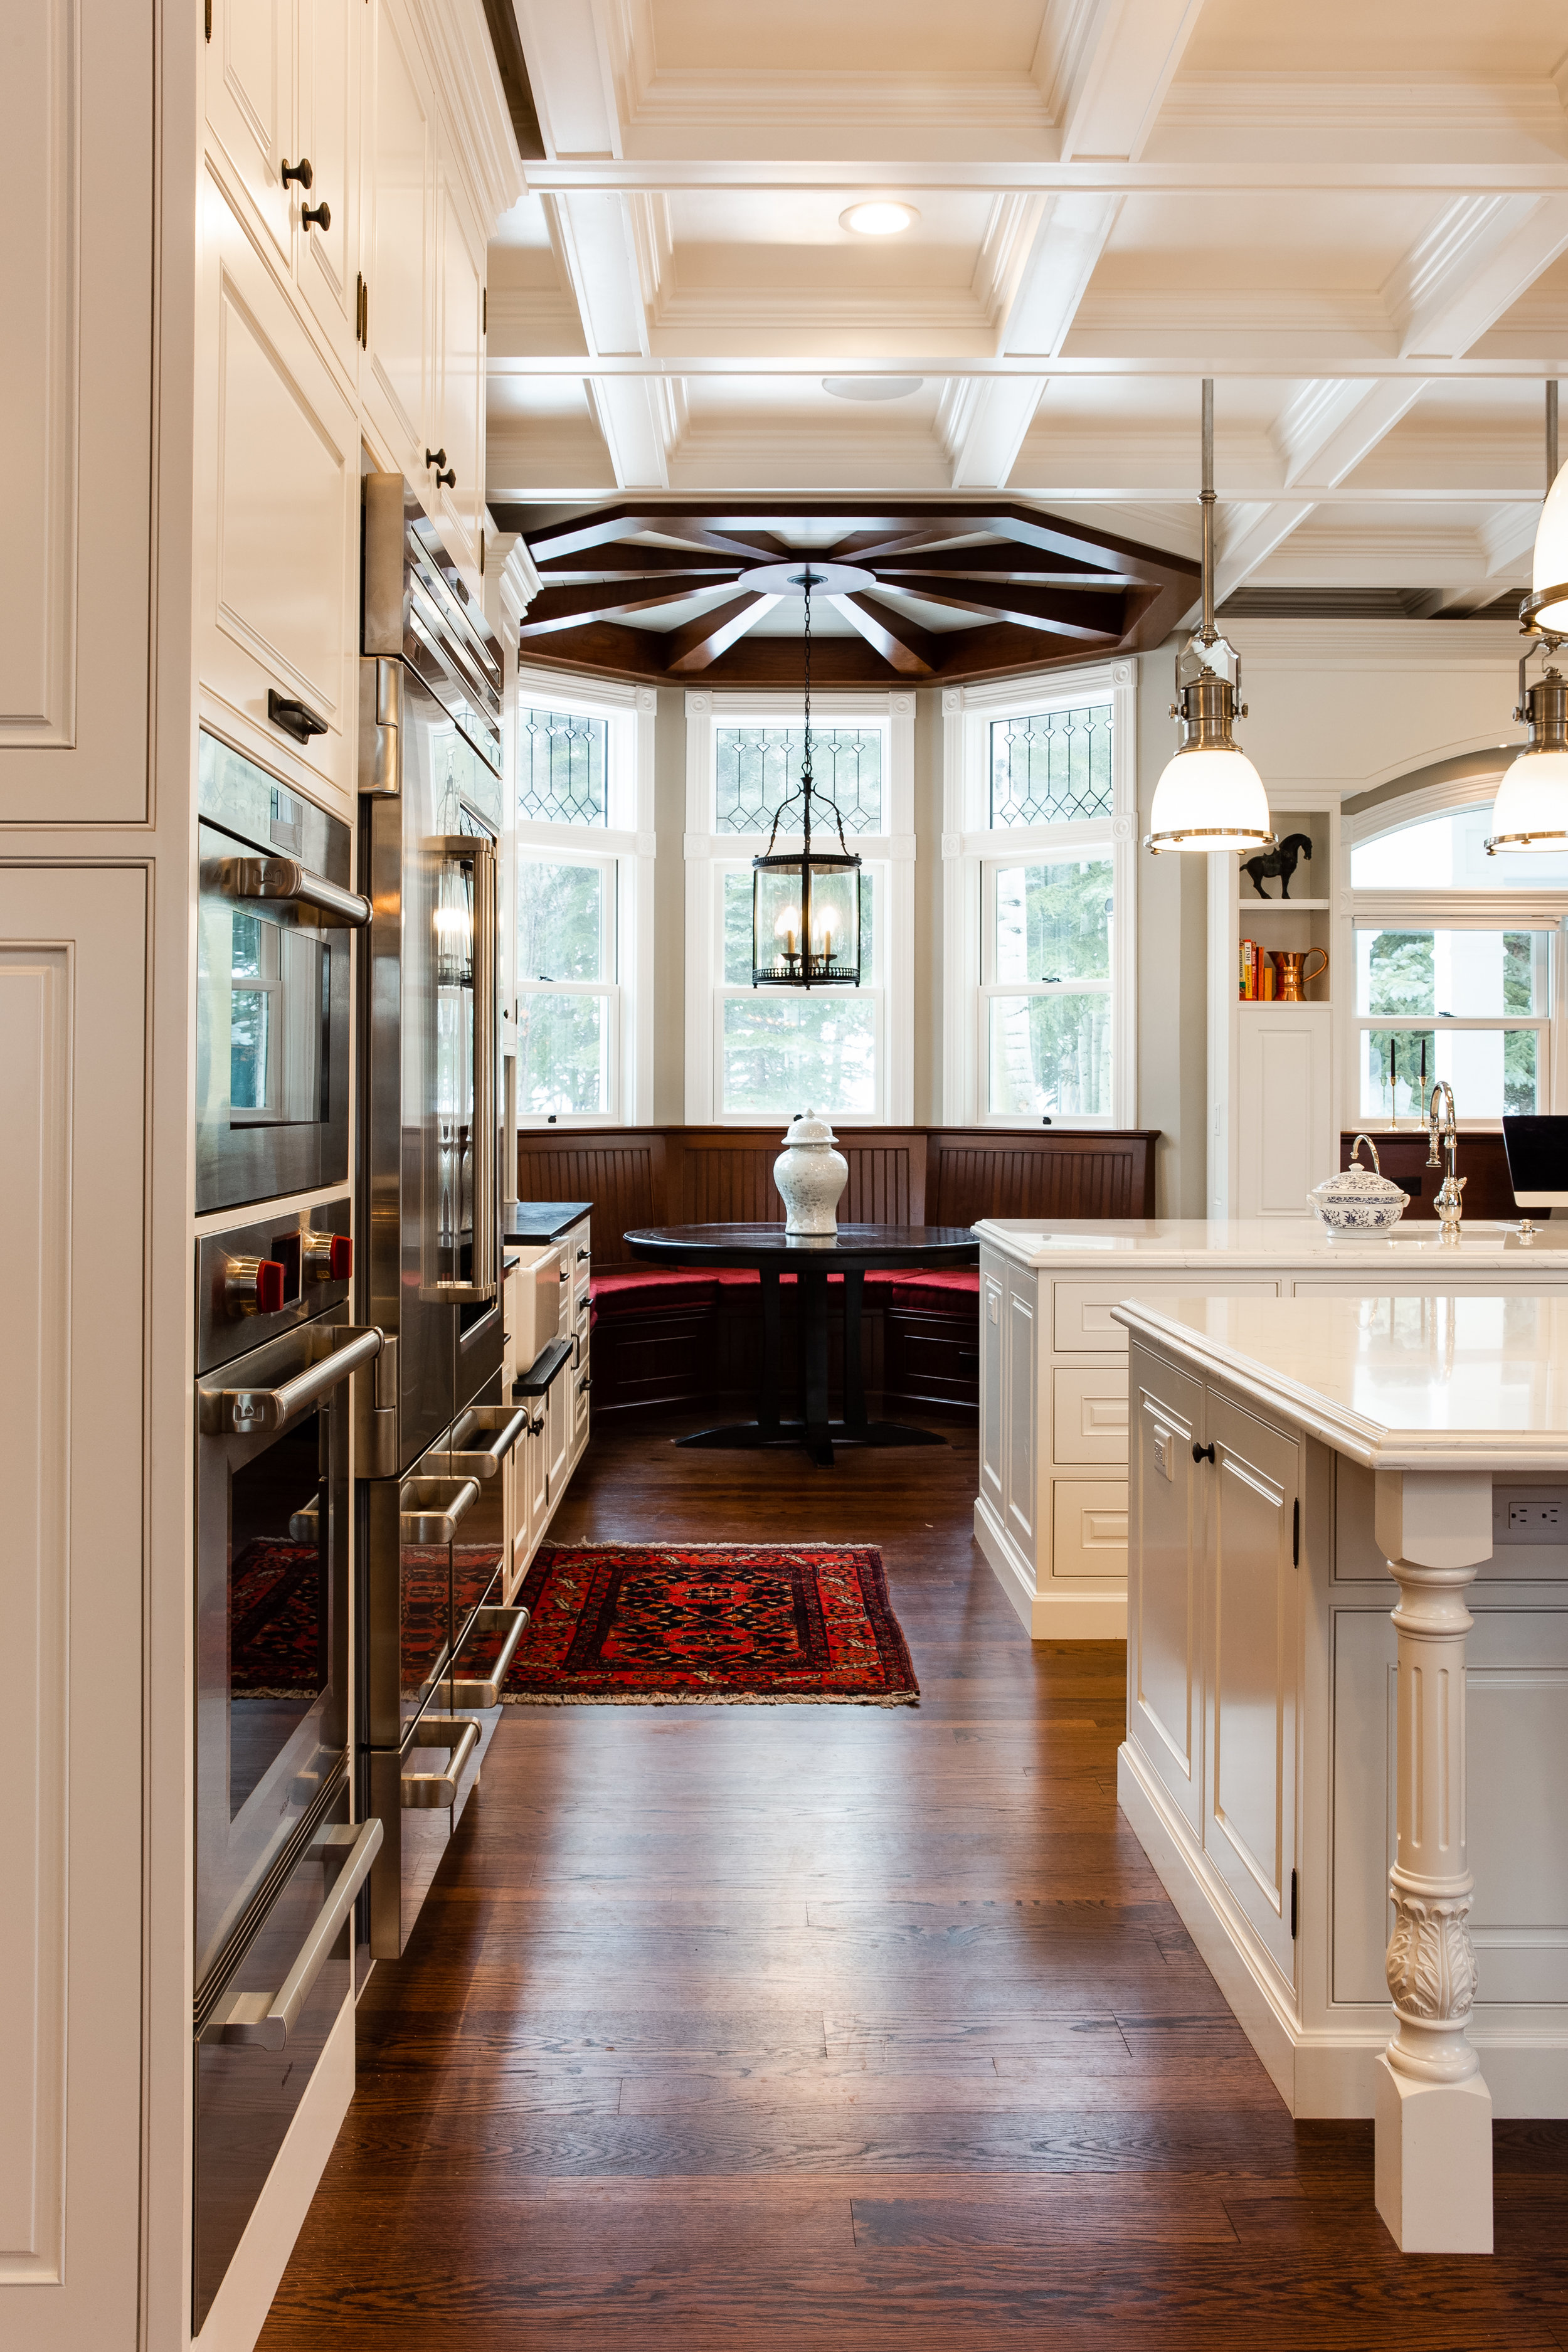 Melissa Kelsey Utah Residential Architecture Photographer Historic Home Kitchen Remodel In Park City For Teerlink Cabinets